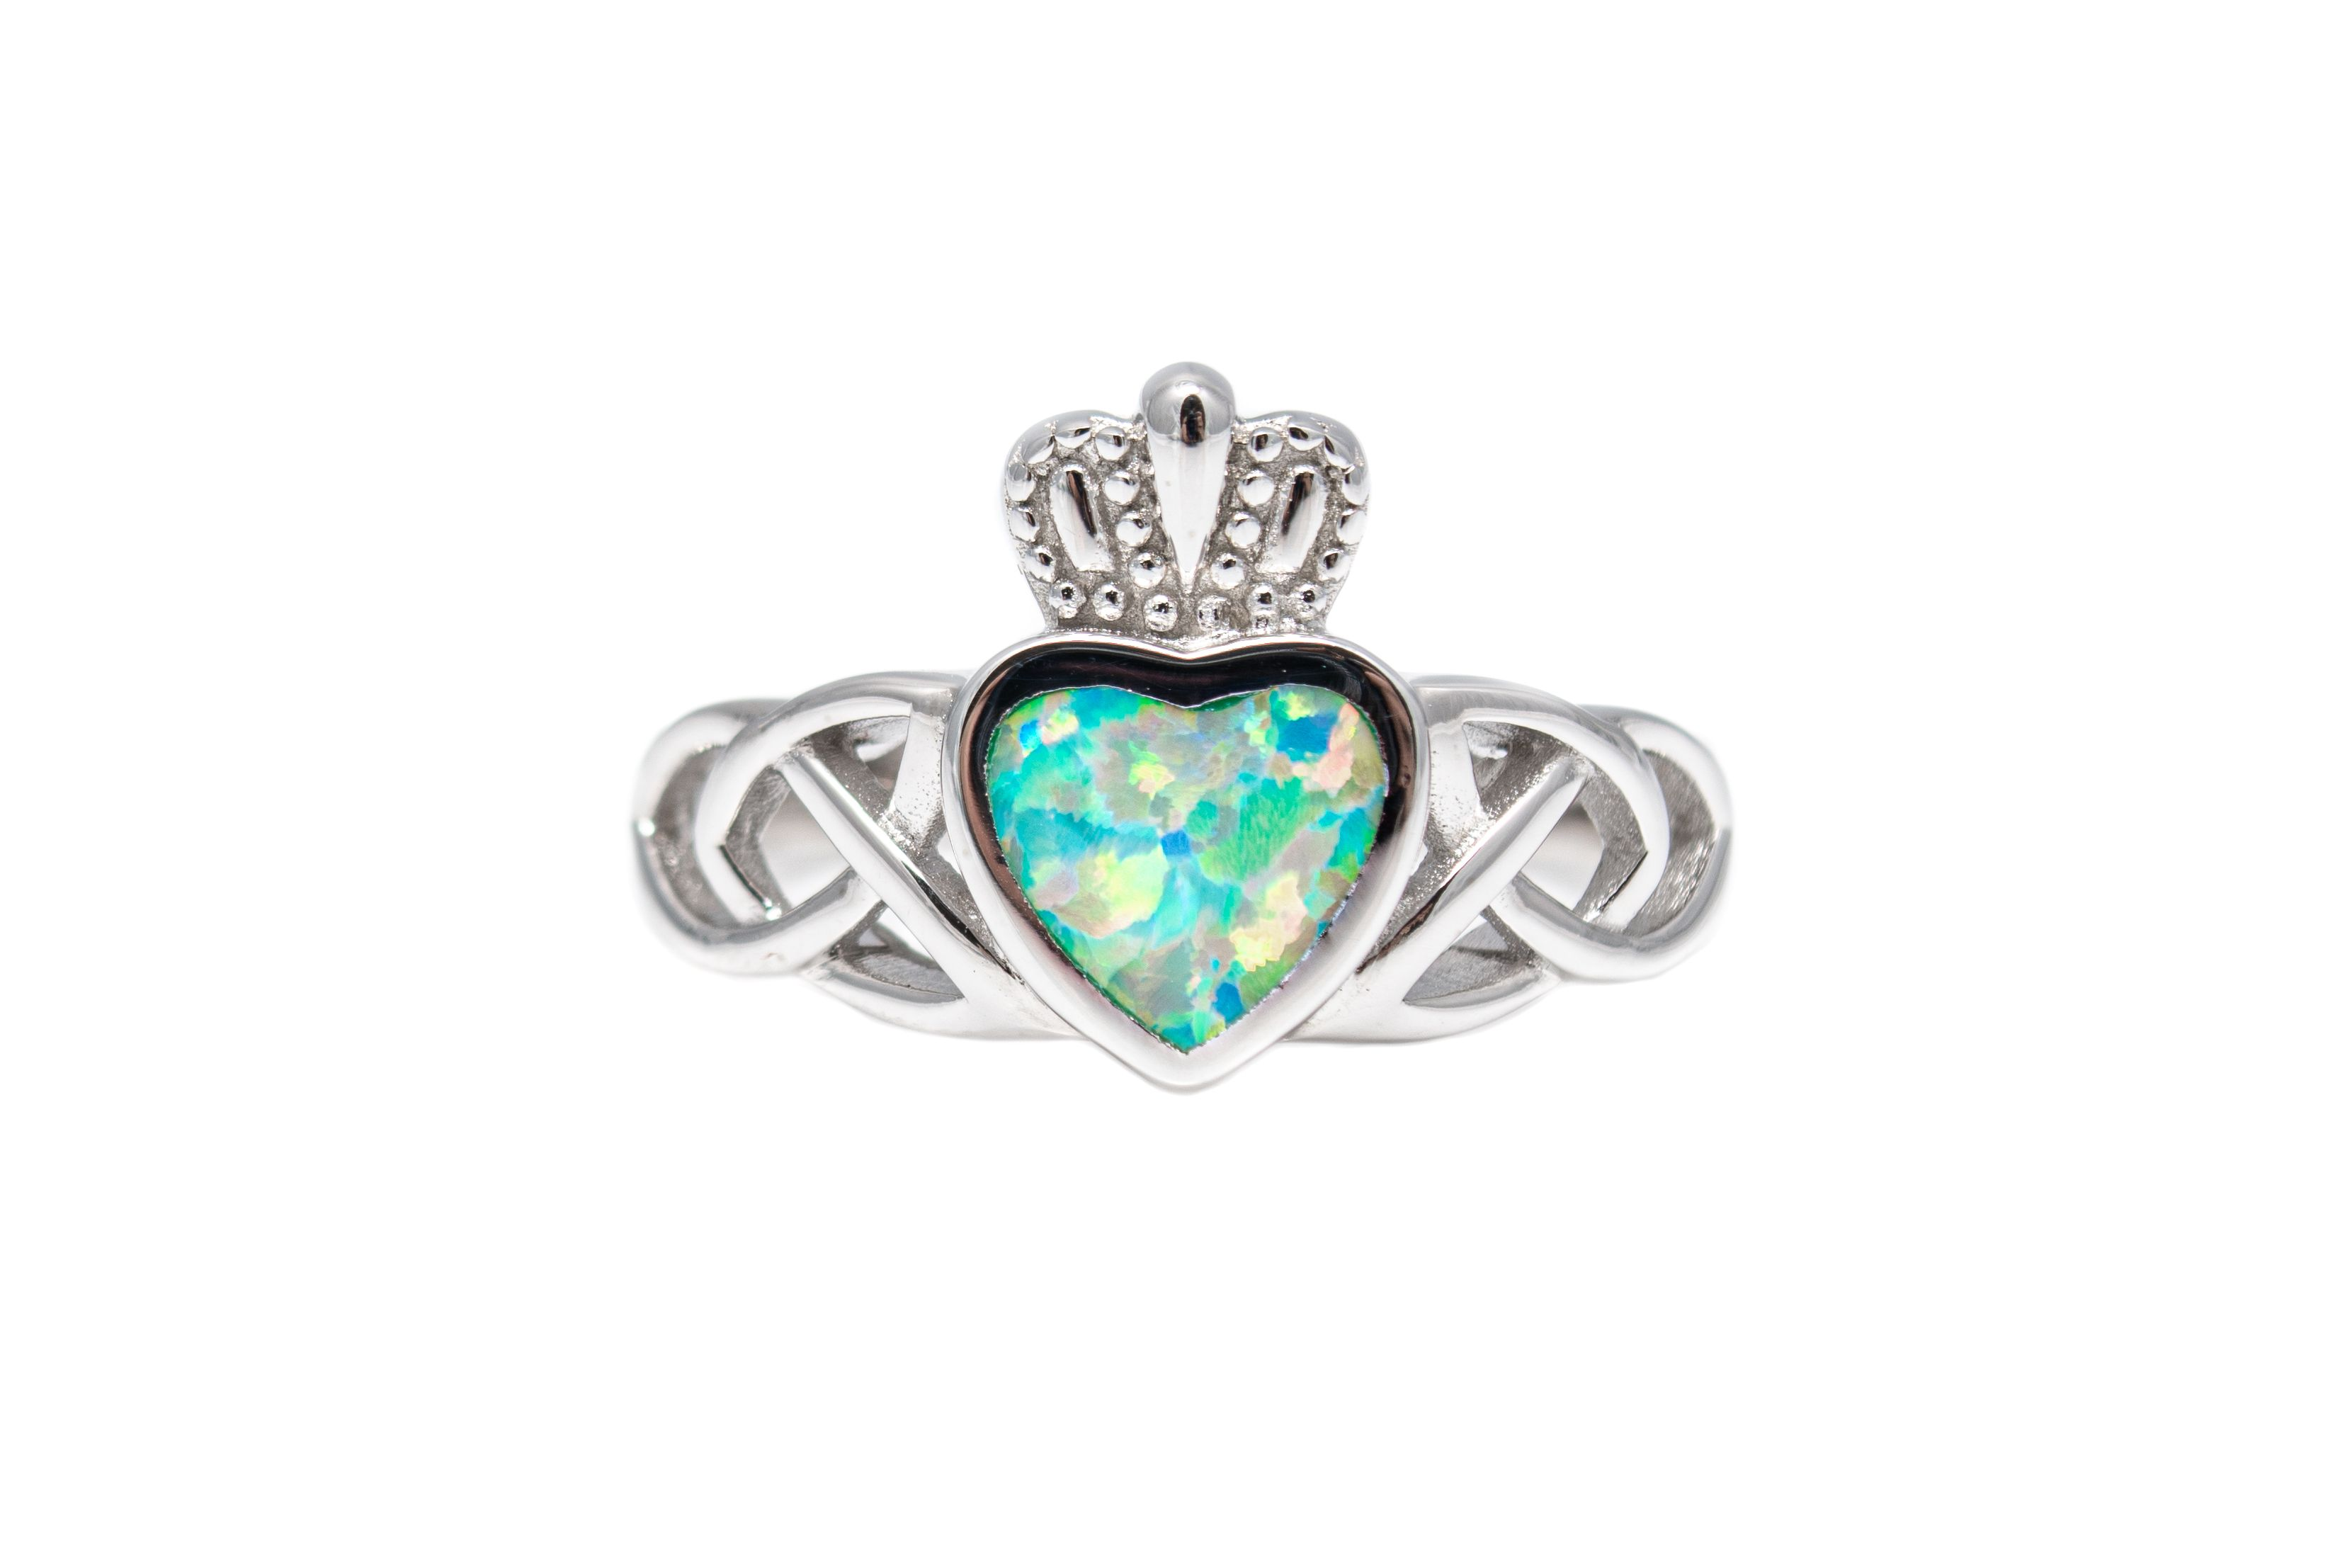 March Birthstone Aquamarine and Claddagh